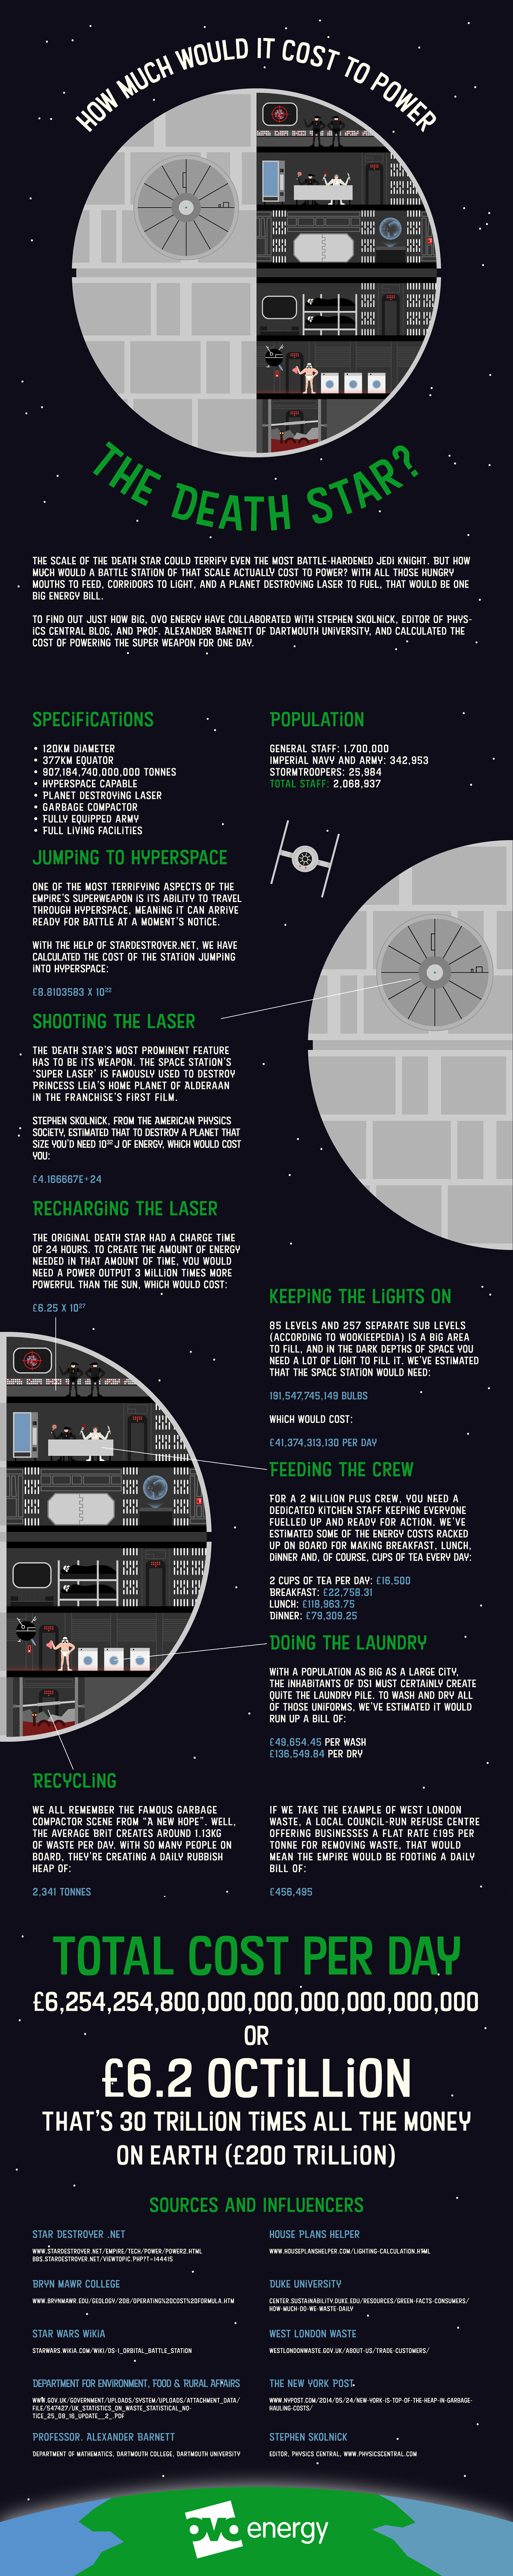 How Much Would It Cost To Power The Death Star? #Infographic